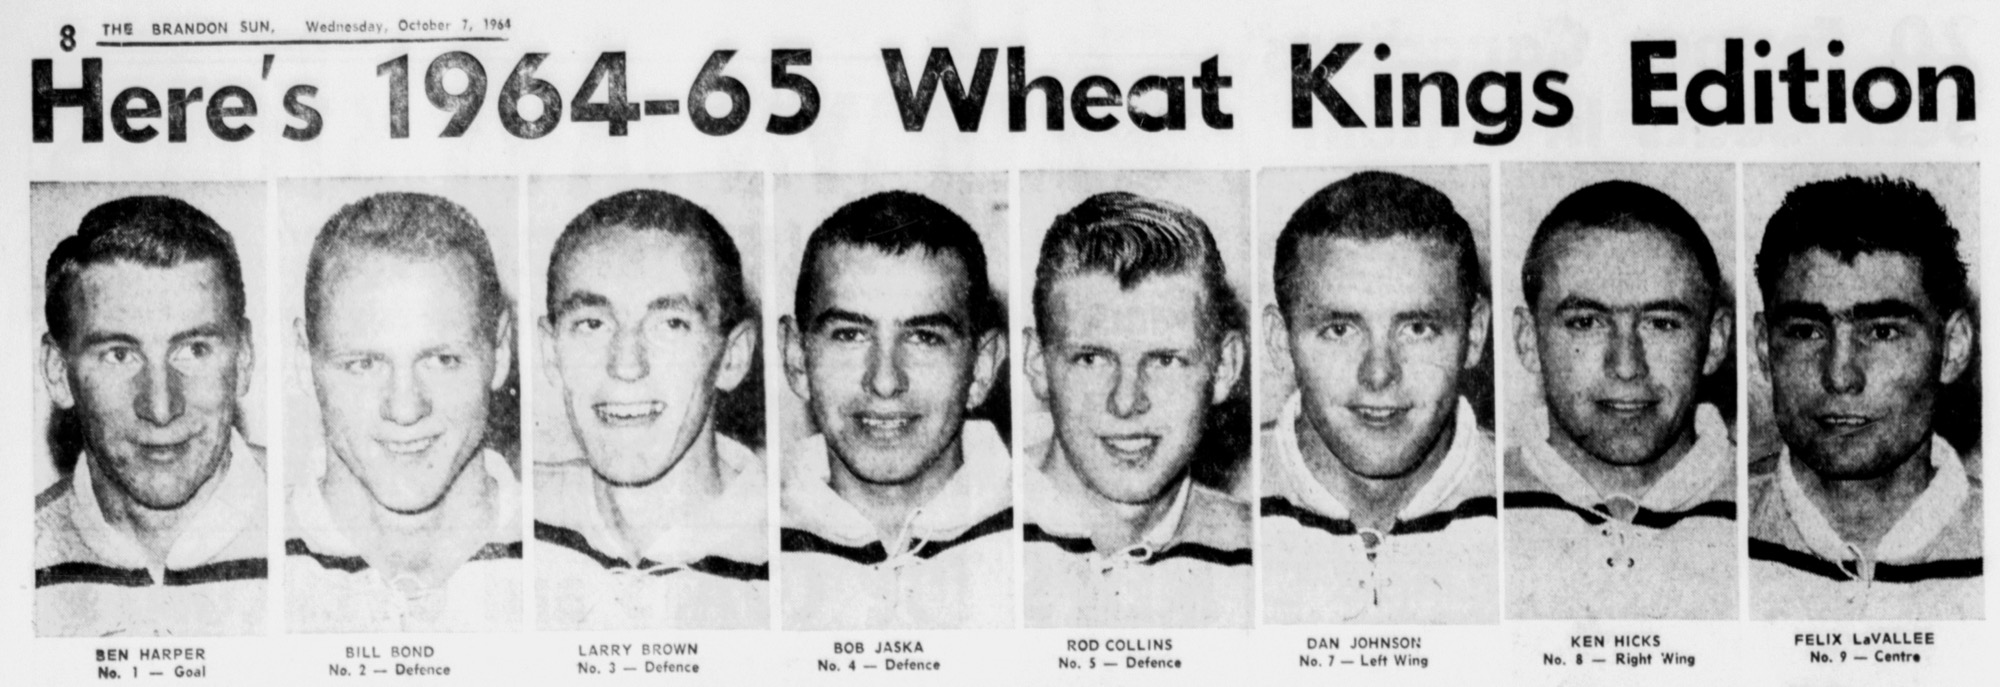 The 1964-65 Brandon Wheat Kings team is unveiled in the Oct. 7, 1964 edition of the Brandon Sun.